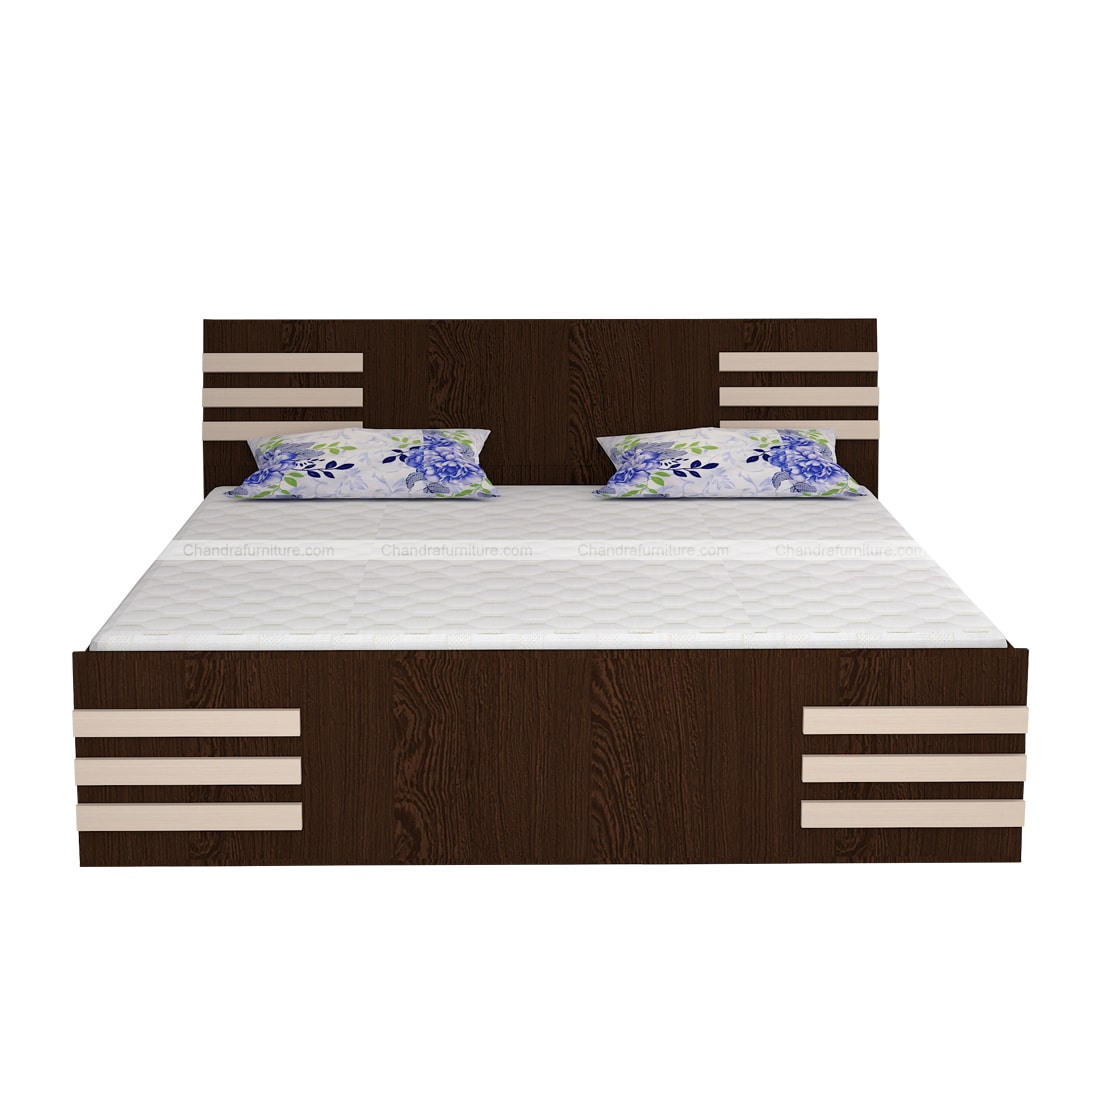 Chandra Furniture King Size Bed Royal